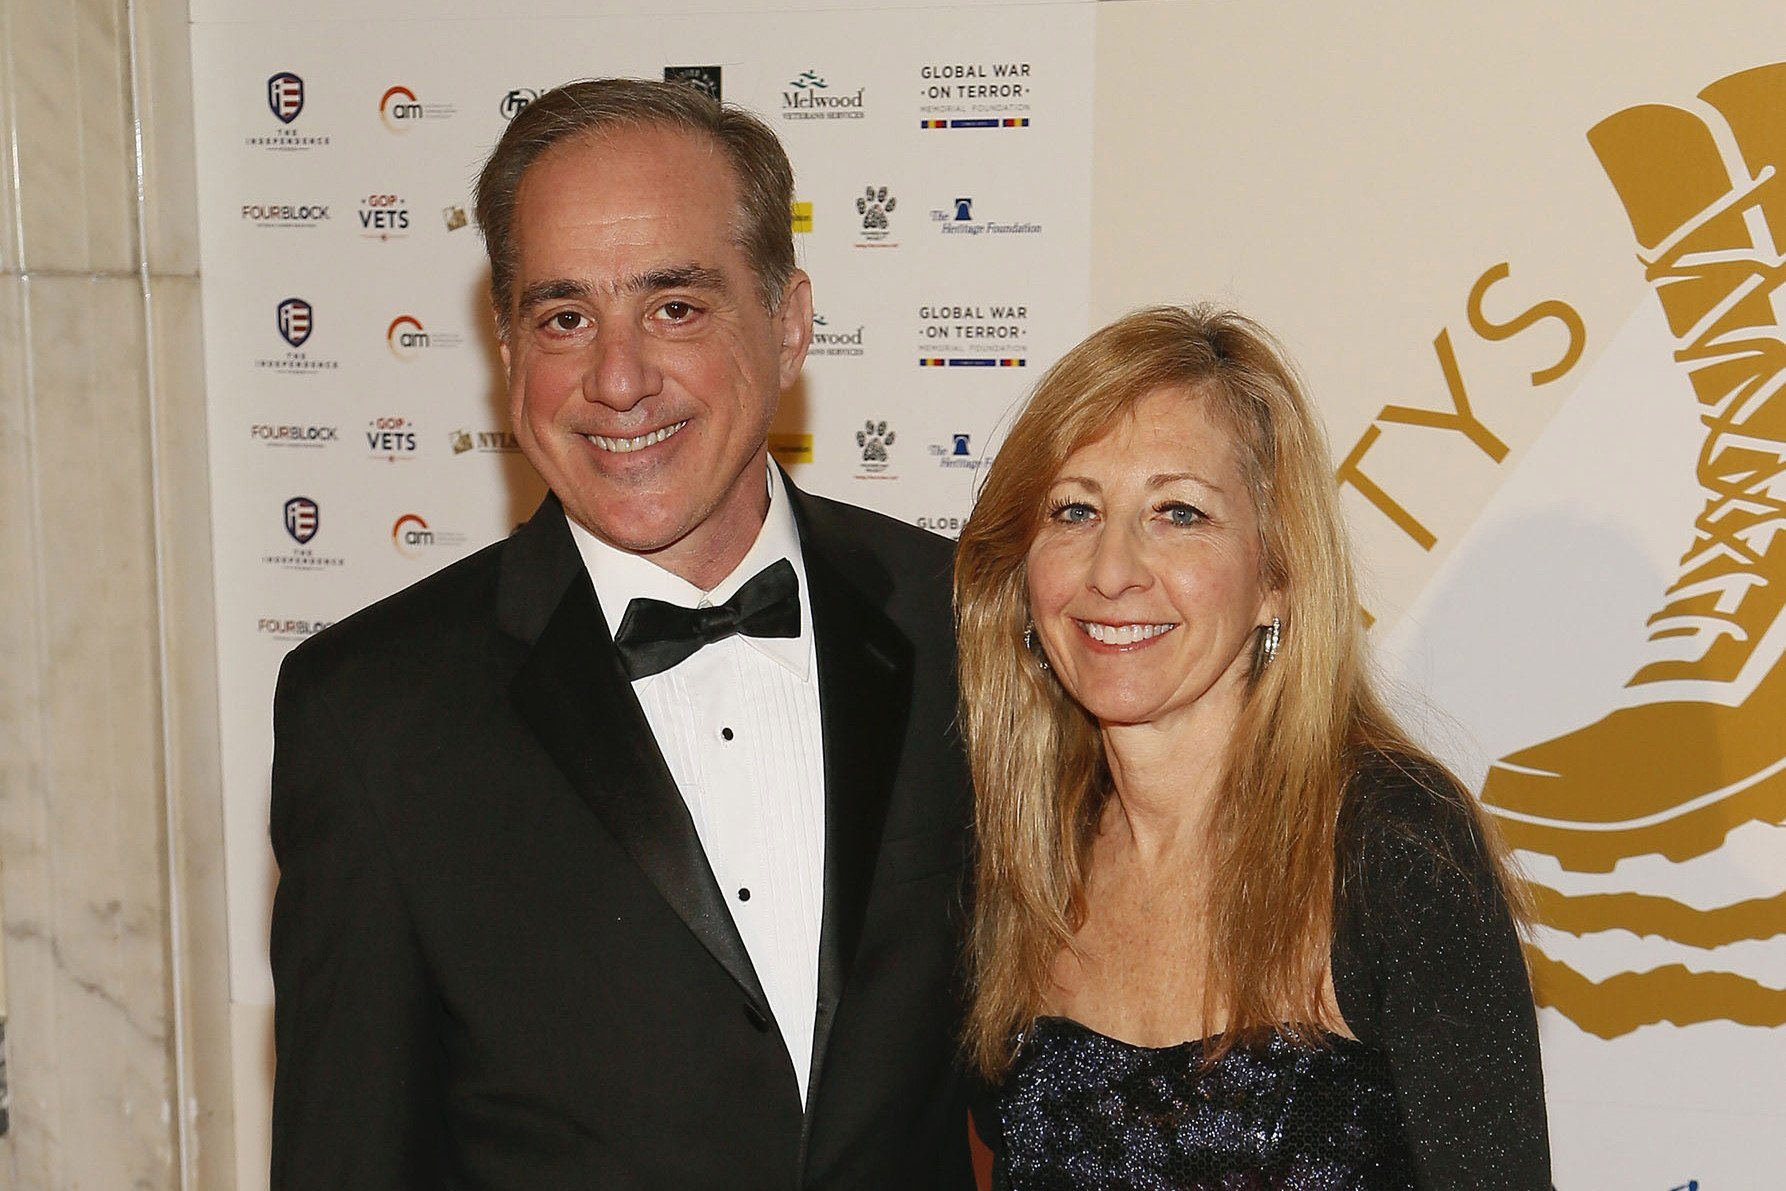 VA chief doctored email so wife could travel on taxpayer dime: watchdog